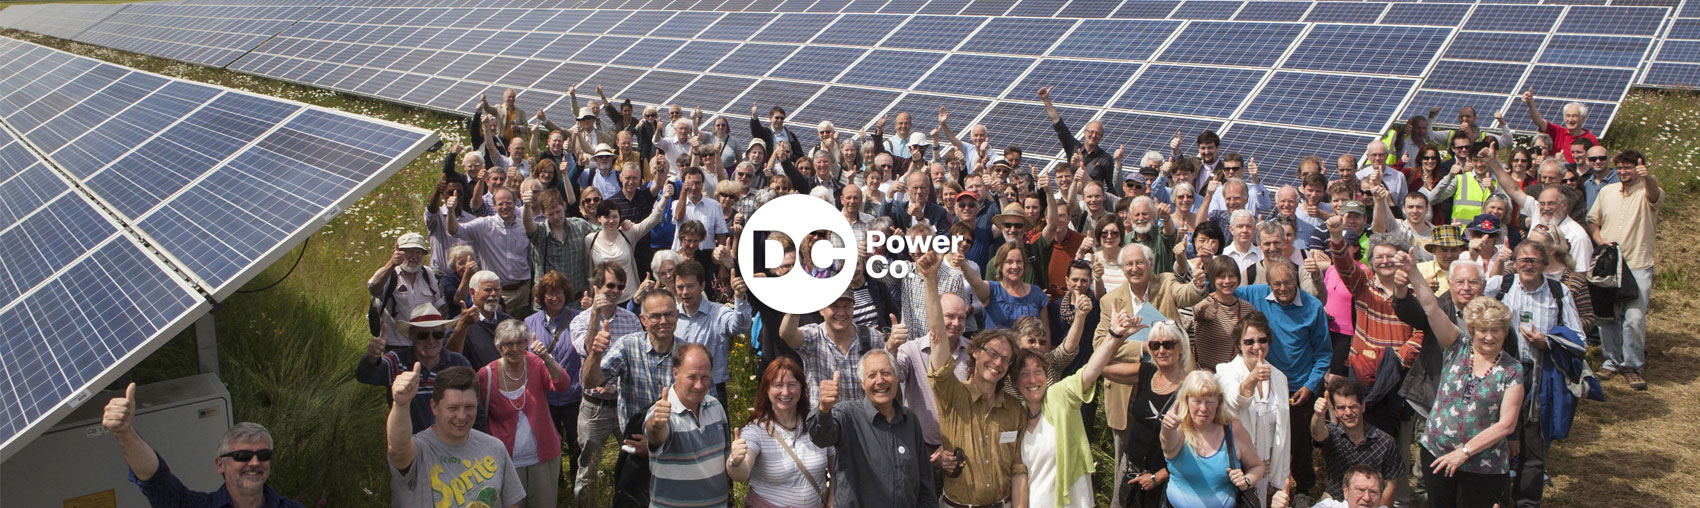 A power company for solar lovers